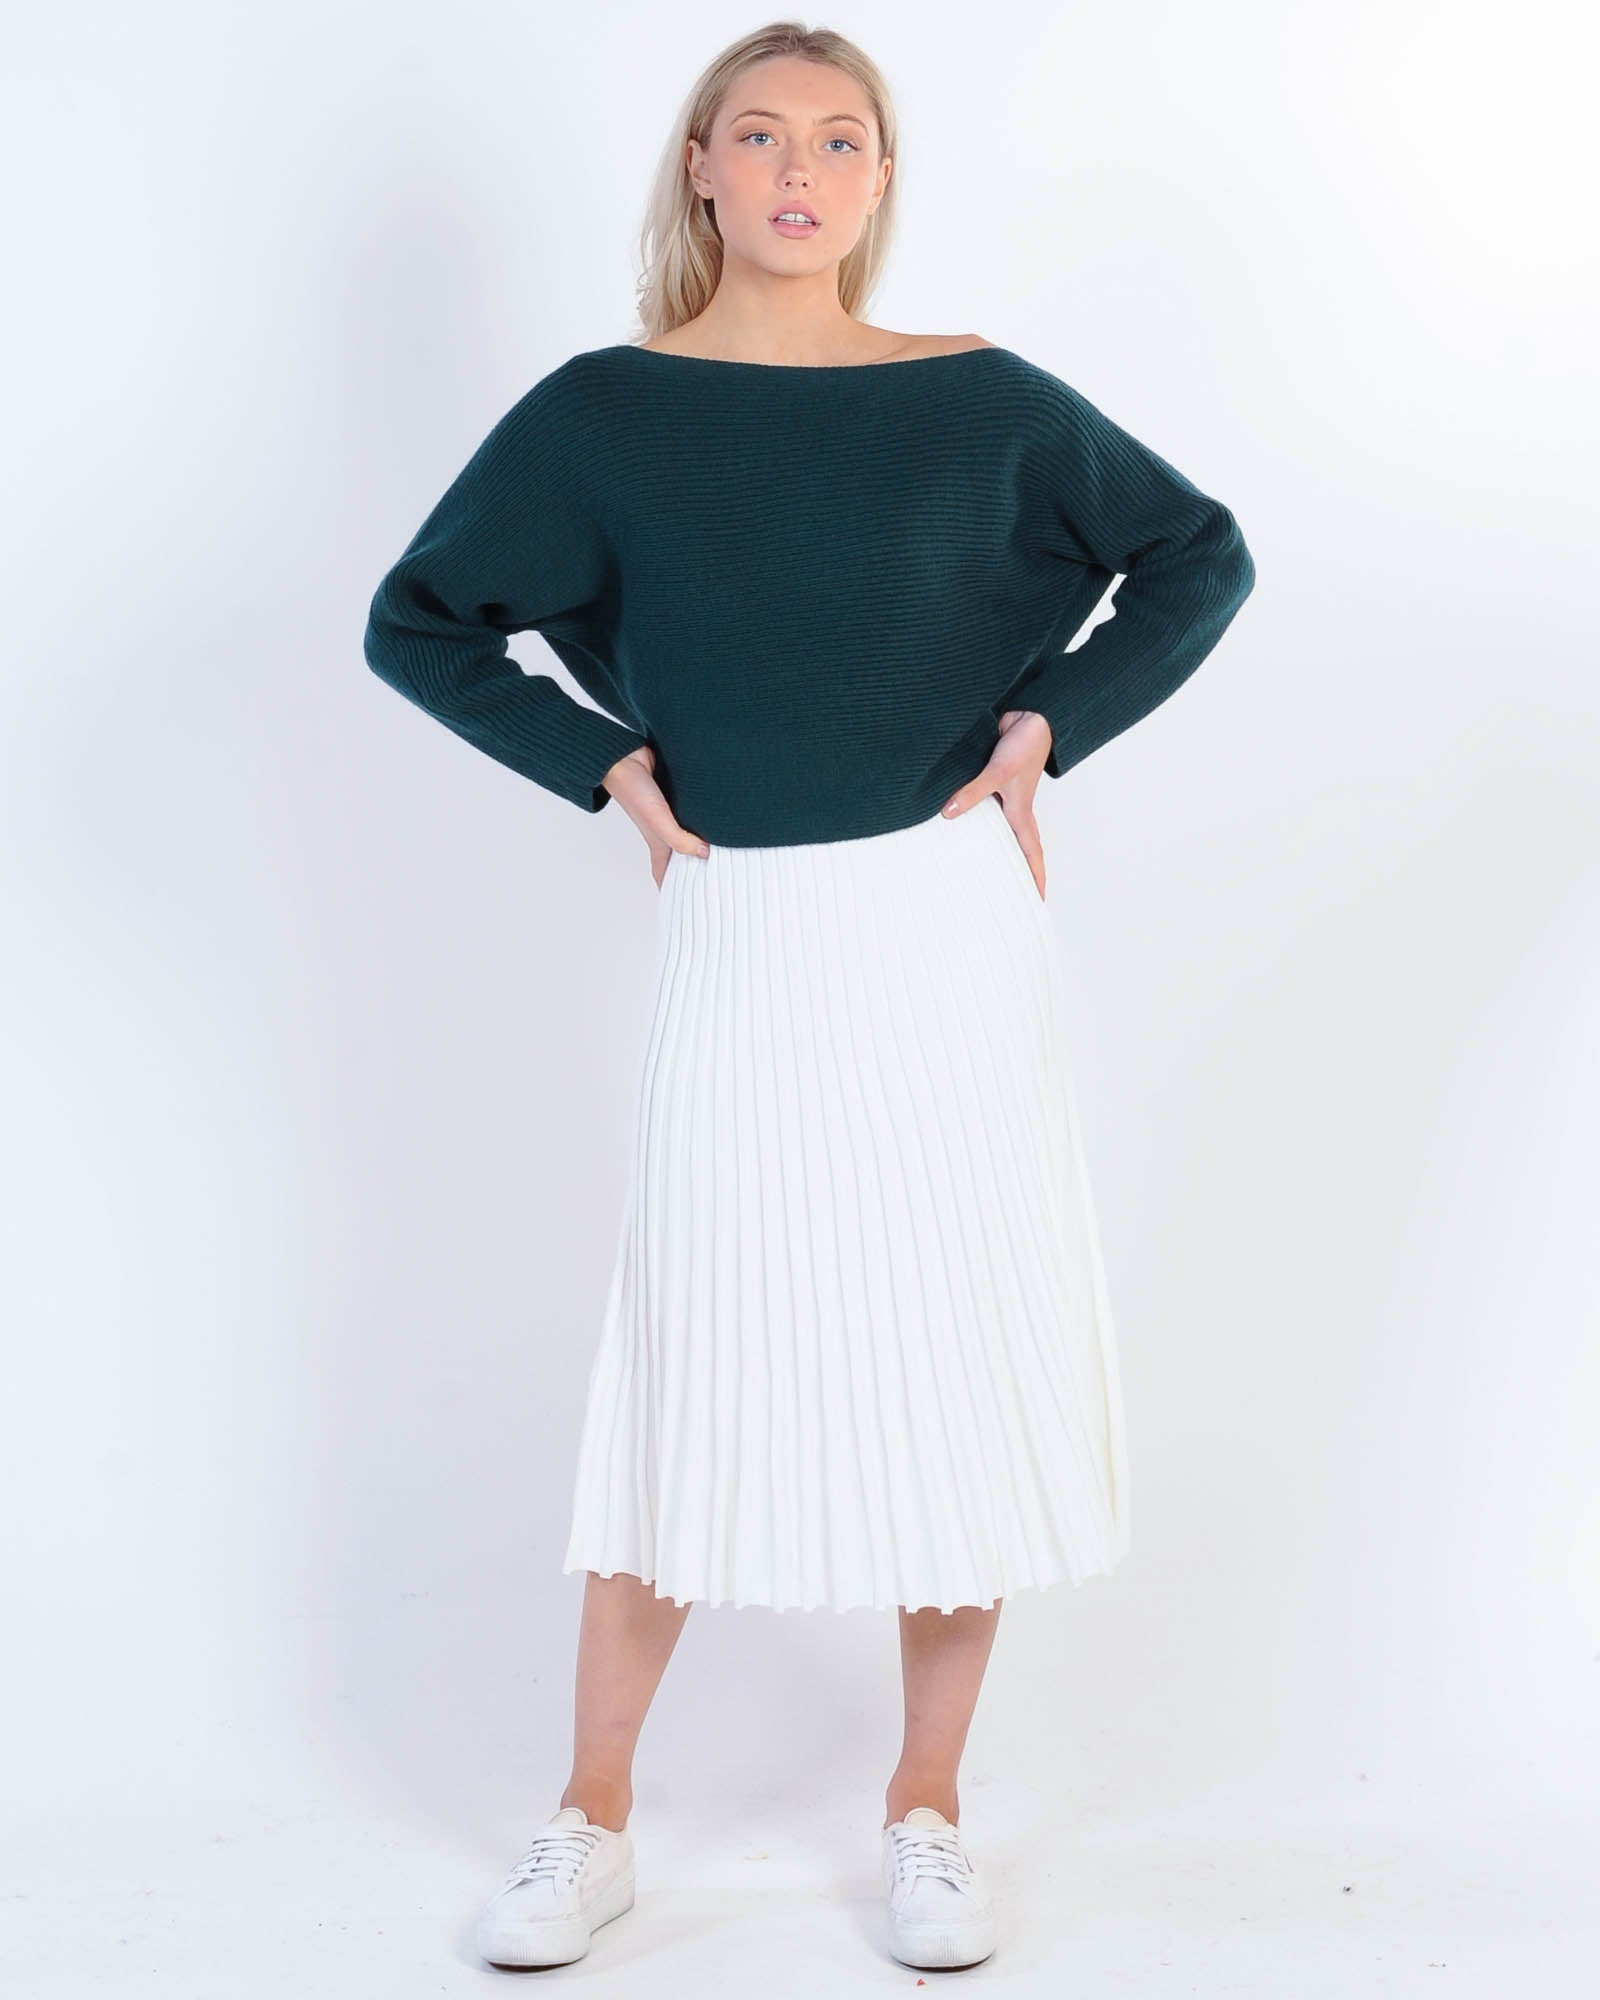 Make A Move Drop Shoulder Knit - Emerald